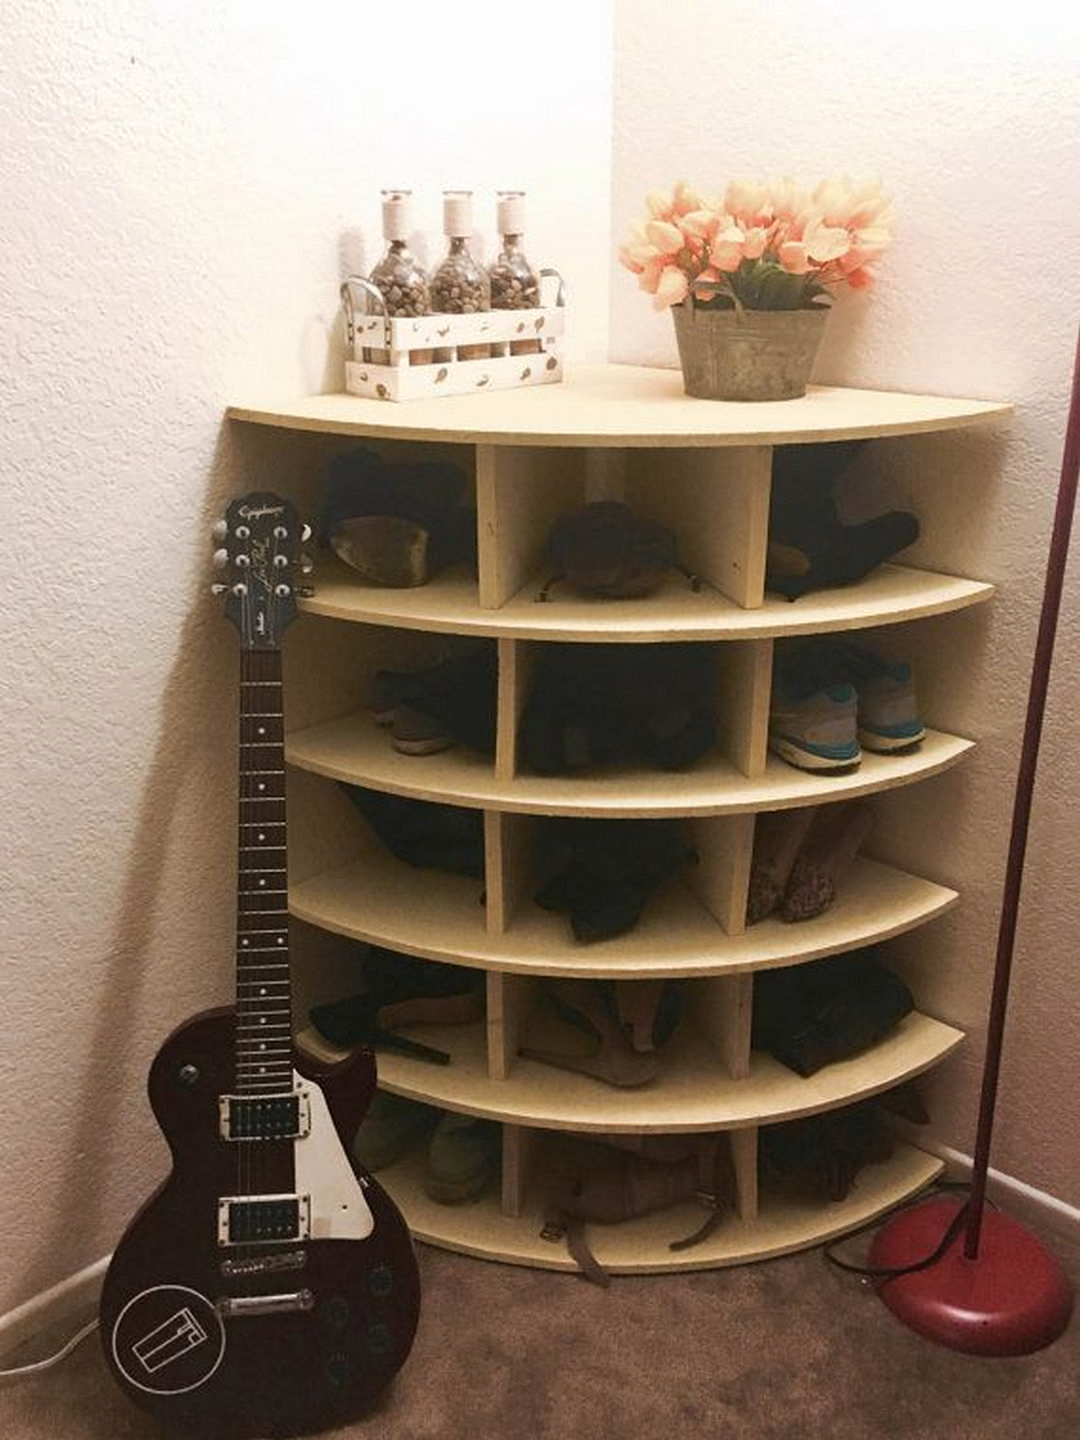 58 Brilliant Shoes Rack Design Ideas | Shoe rack, Diy shoe rack and ...